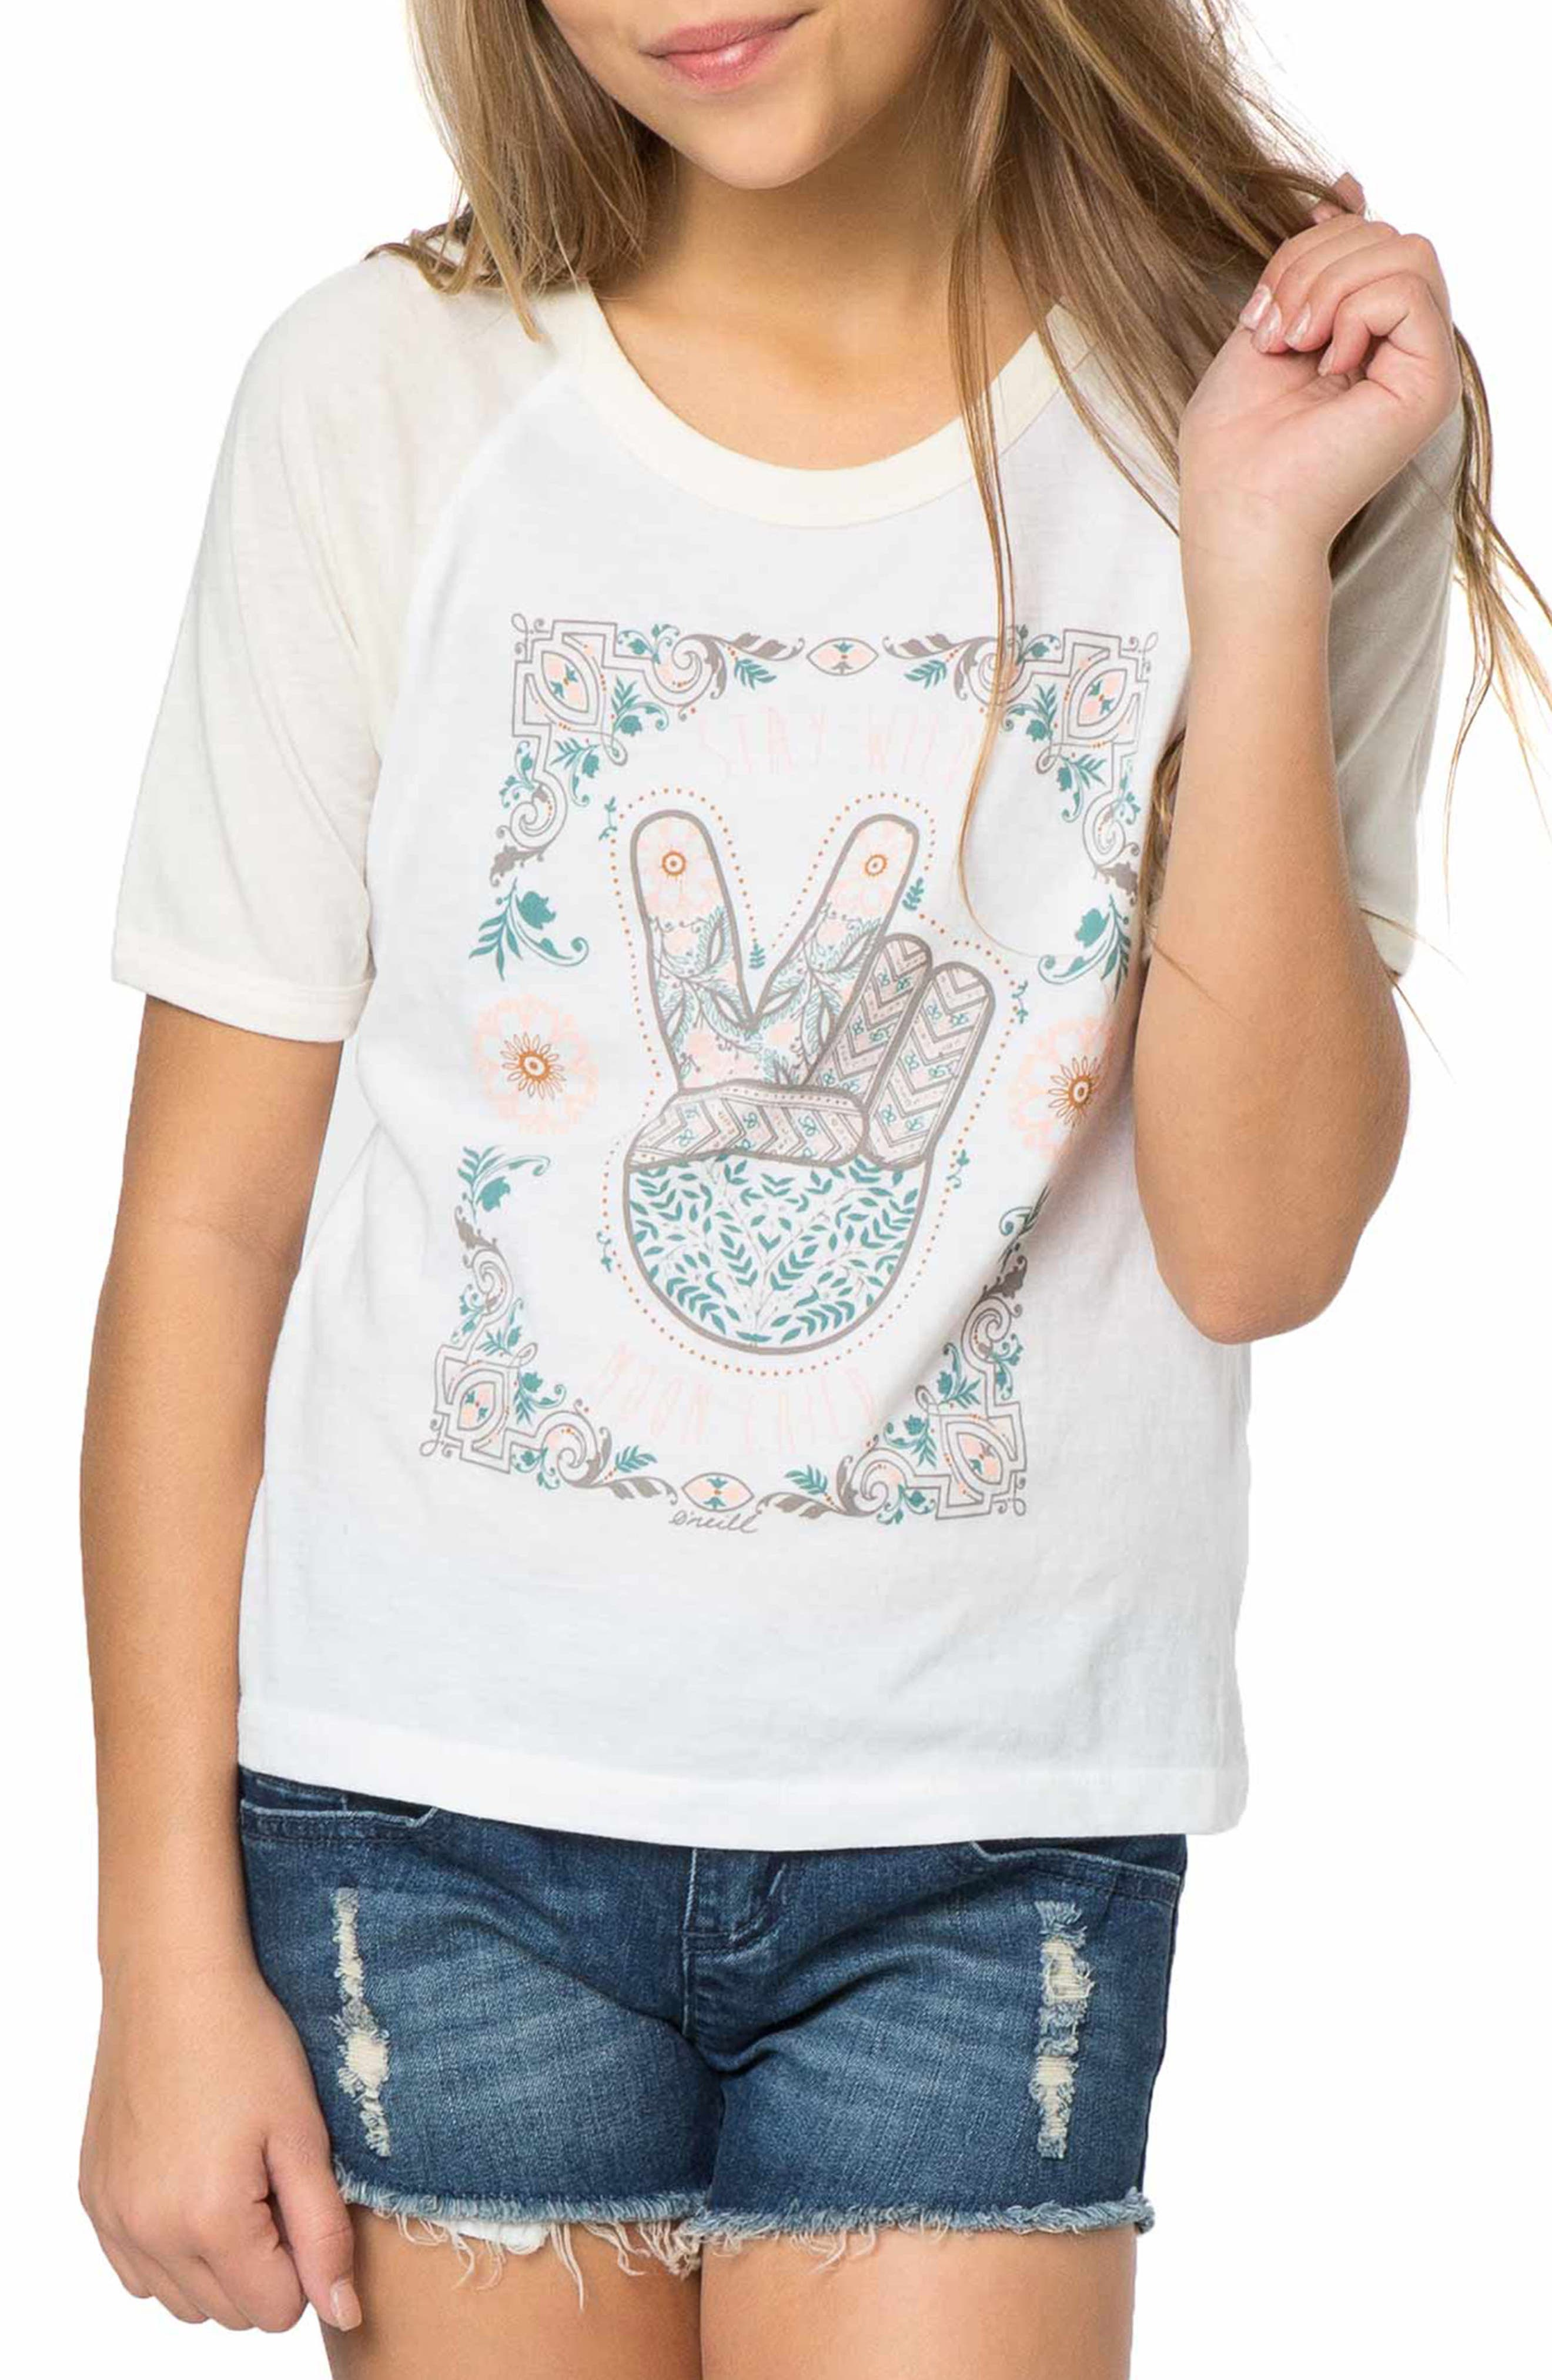 Stay Wild Moon Child Graphic Print Tee,                         Main,                         color, White Heather